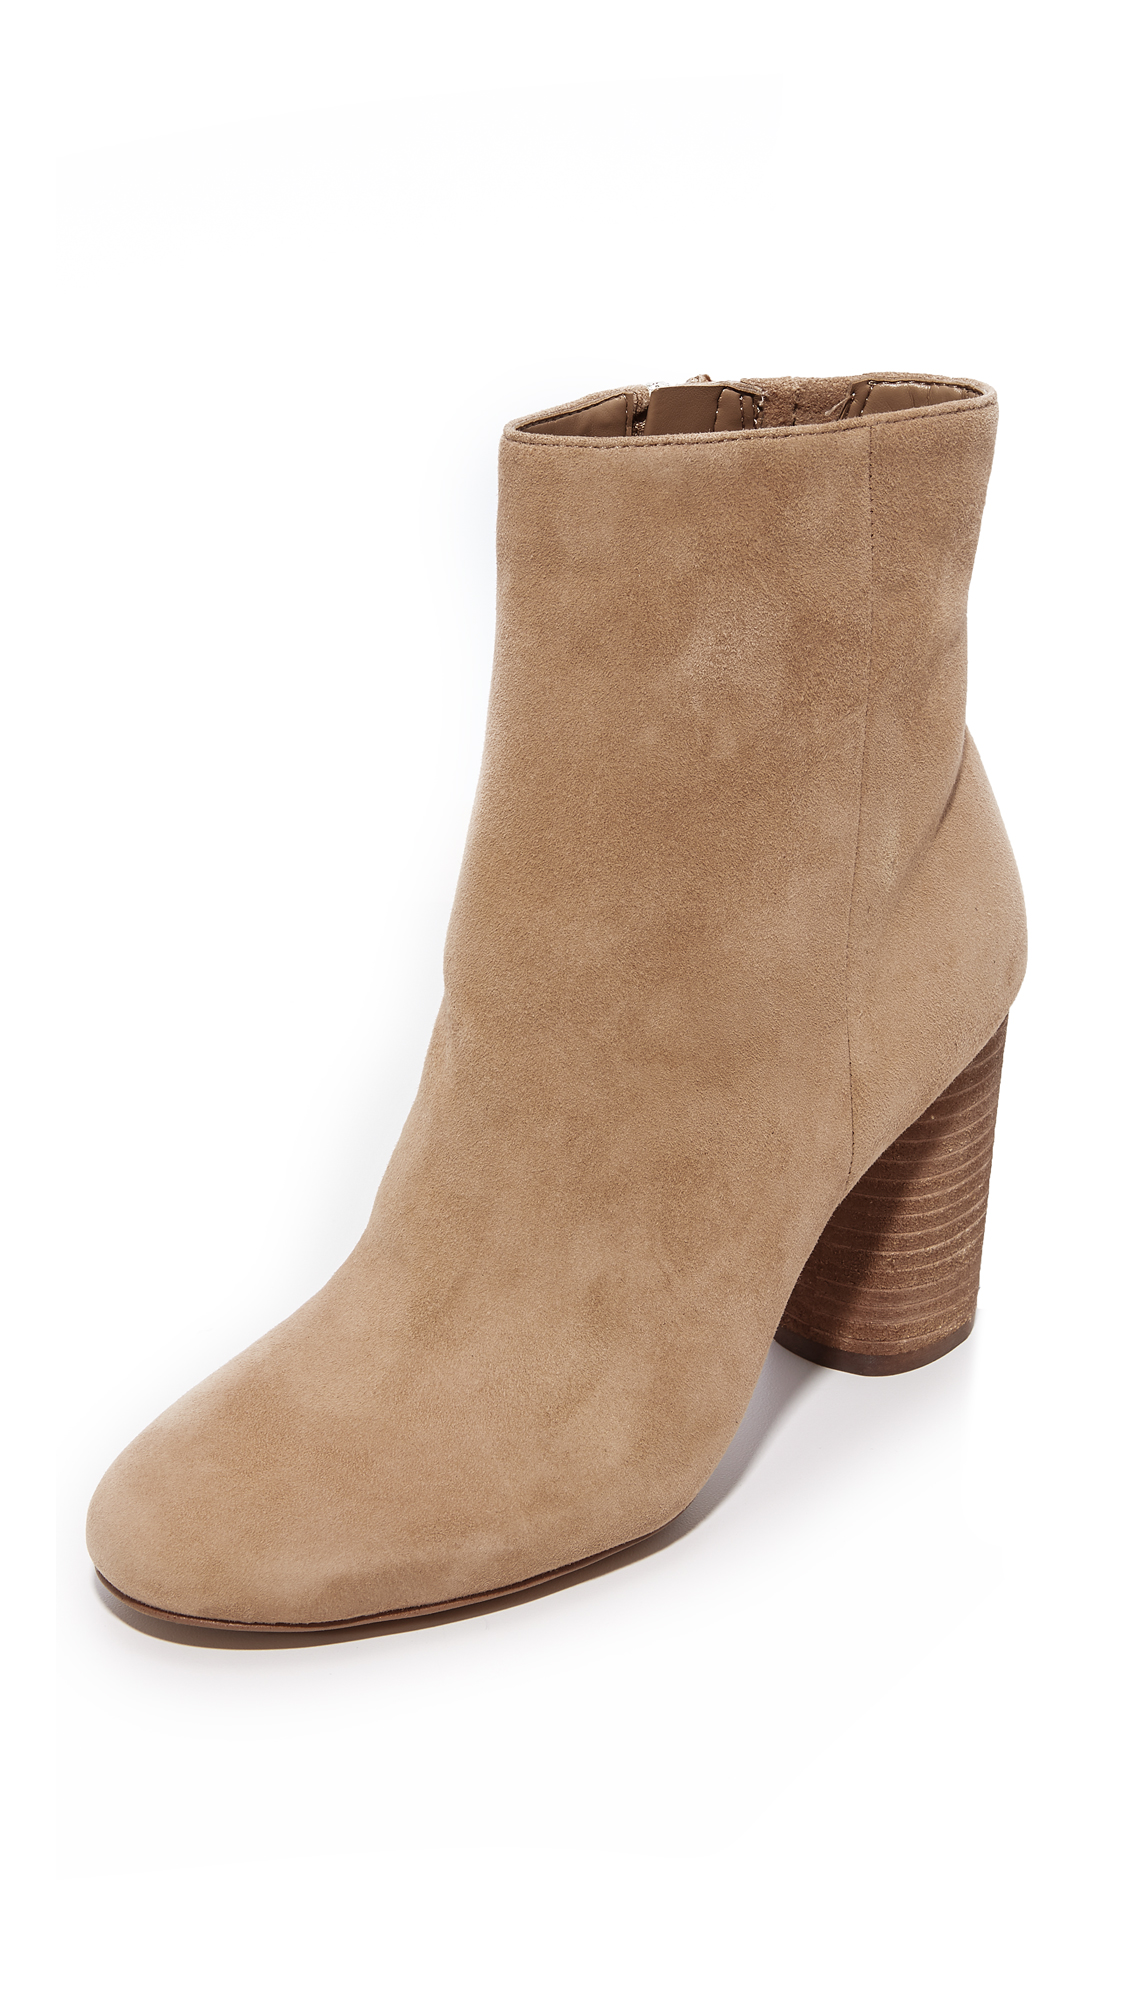 Sam Edelman Corra Booties - Golden Caramel